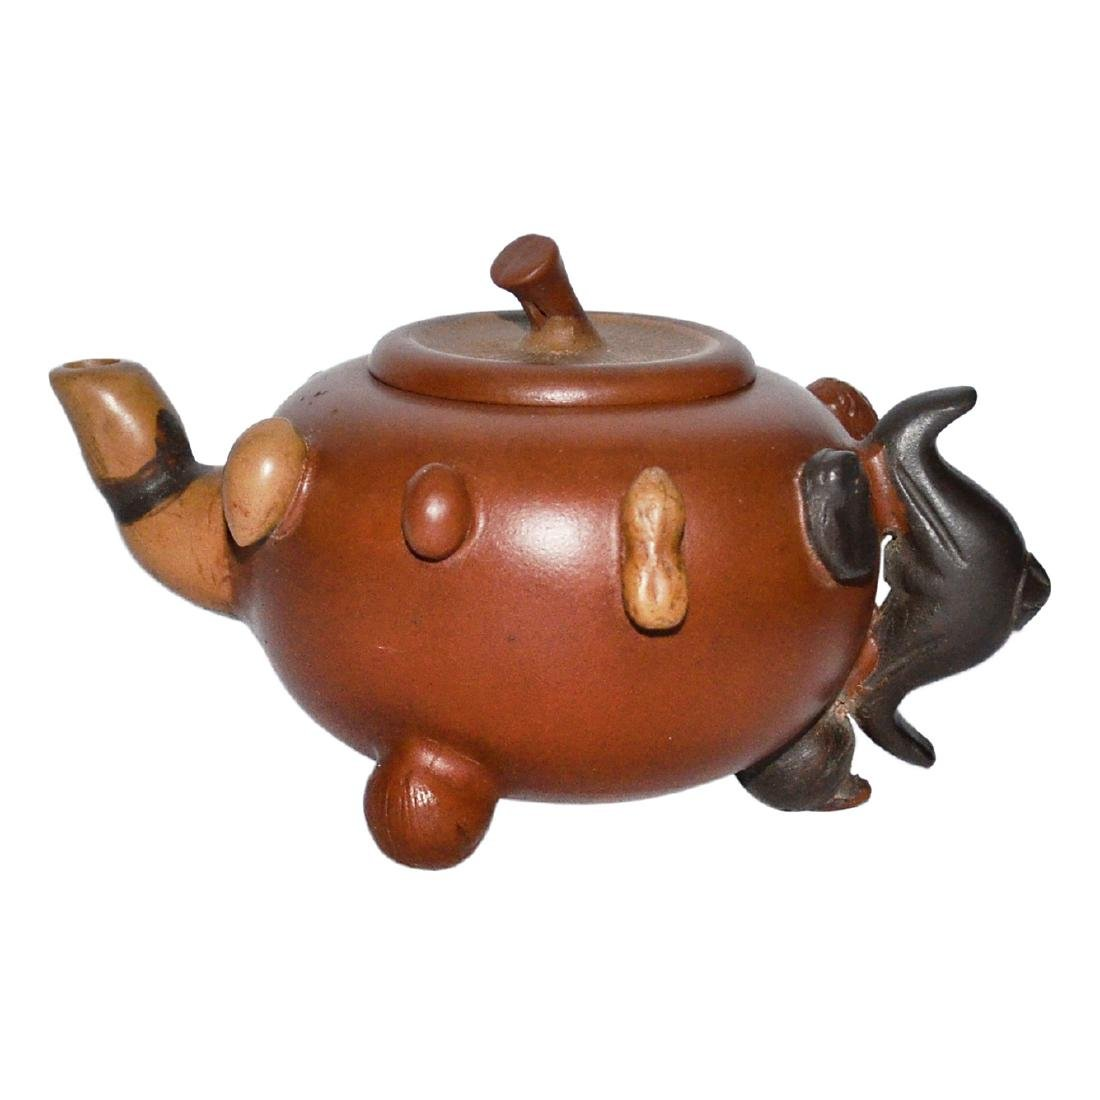 Zisha Teapot with Molded Assorted Nuts Decorations